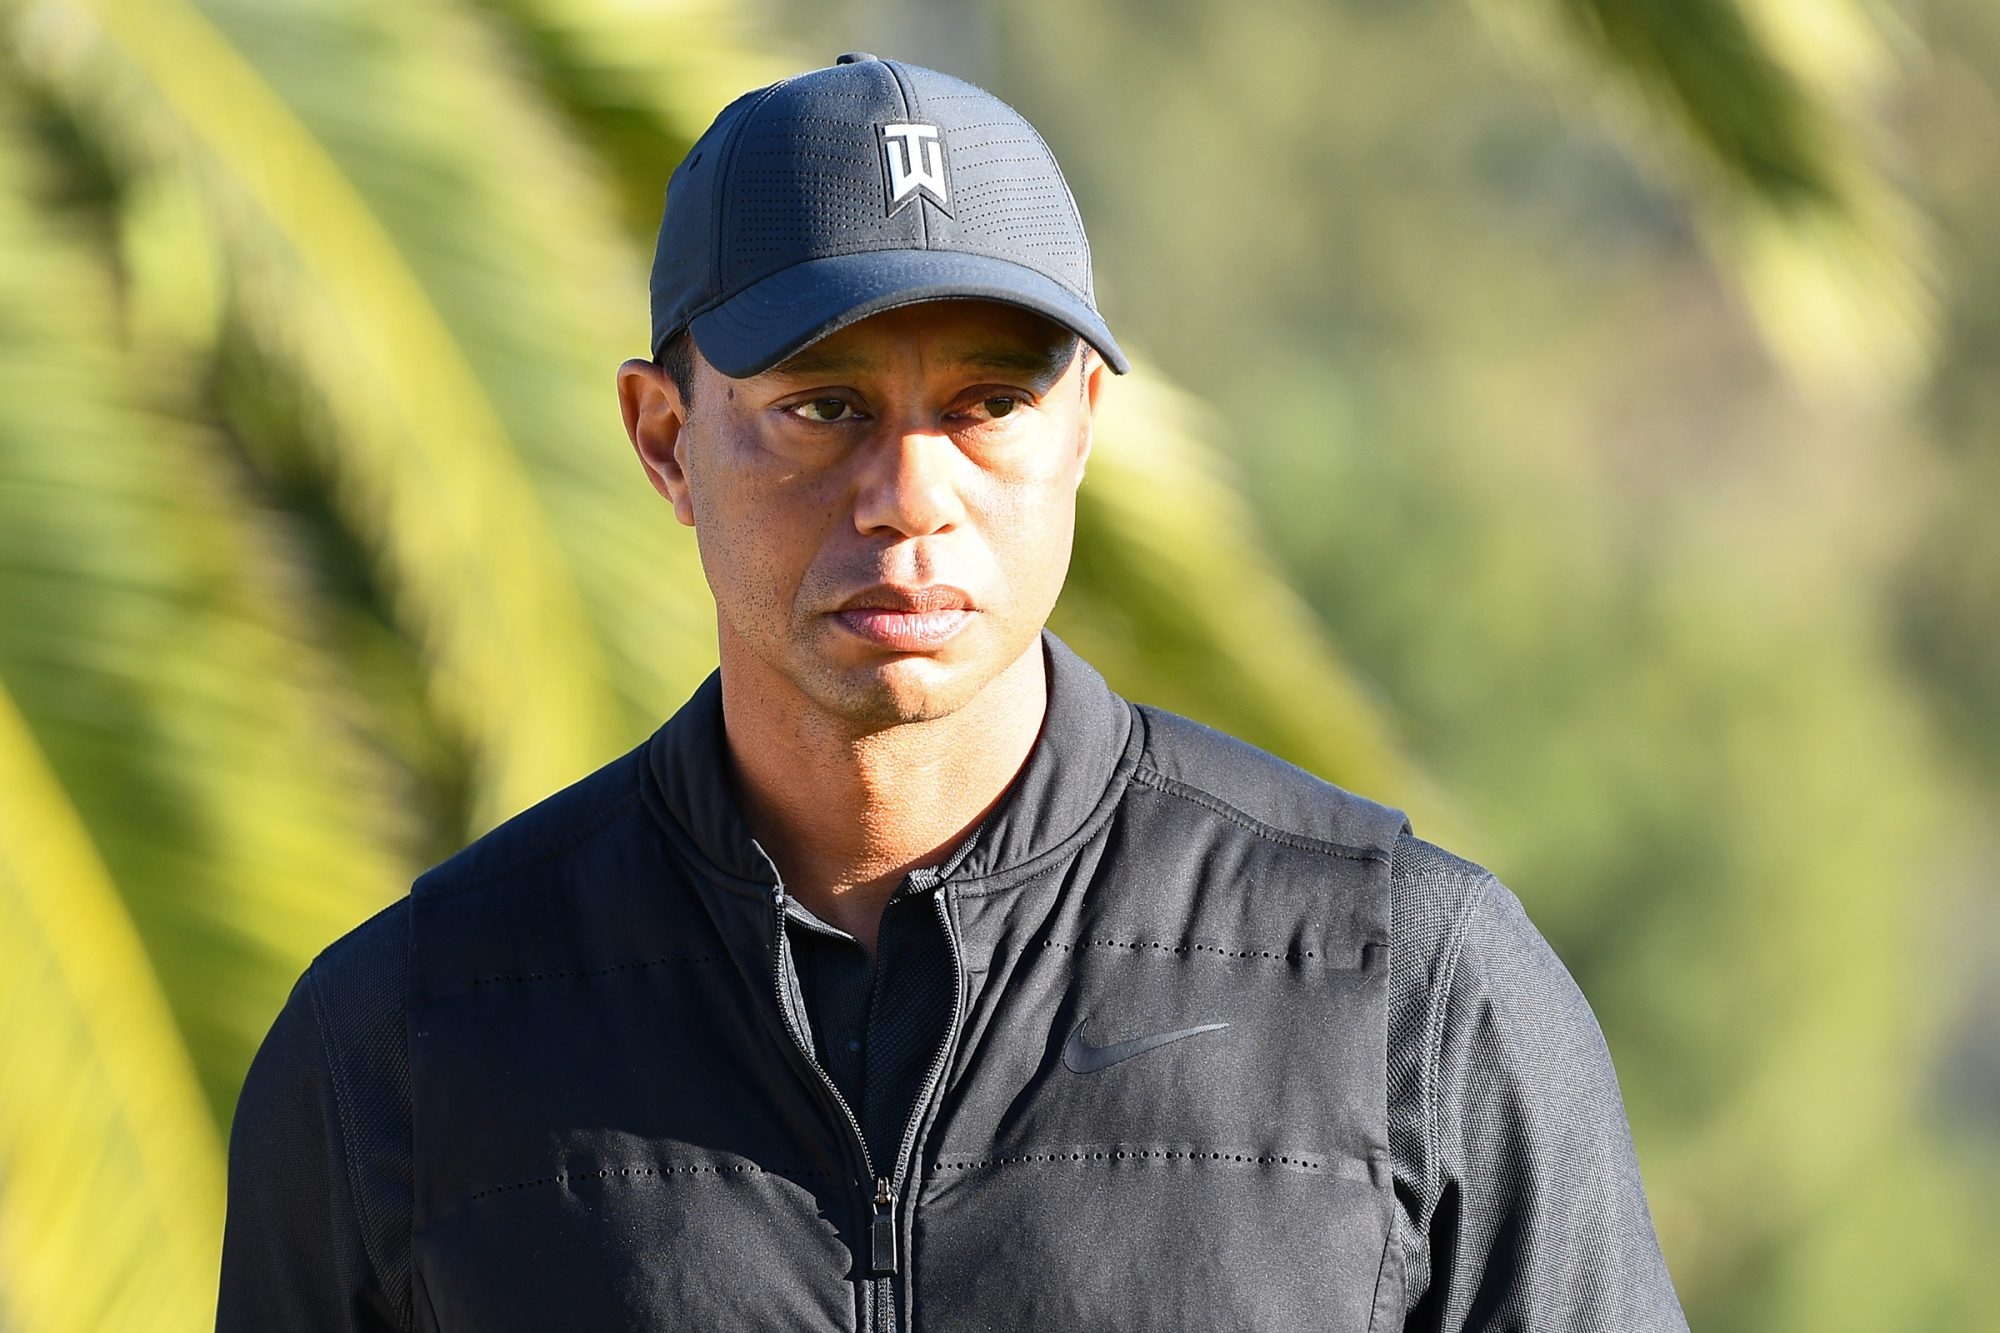 Tiger Woods' Crash Cause Determined by Investigators, Officials Are Unable to Disclose Due to 'Privacy Issues'